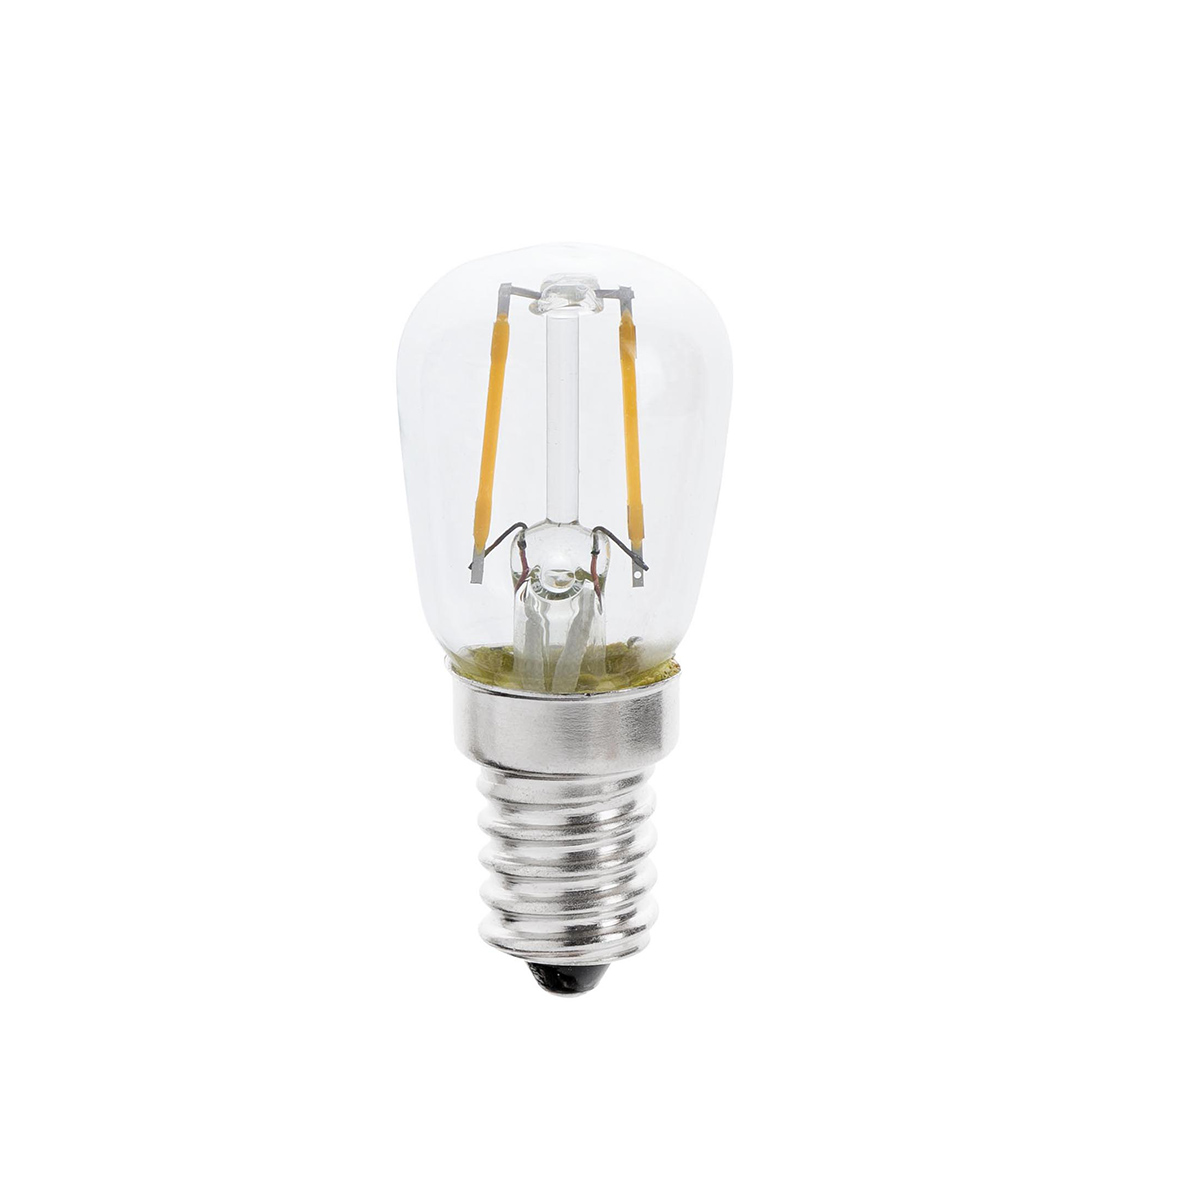 Bec E14 LED decorativ T26 FILAMENT 1W 2700K 17446